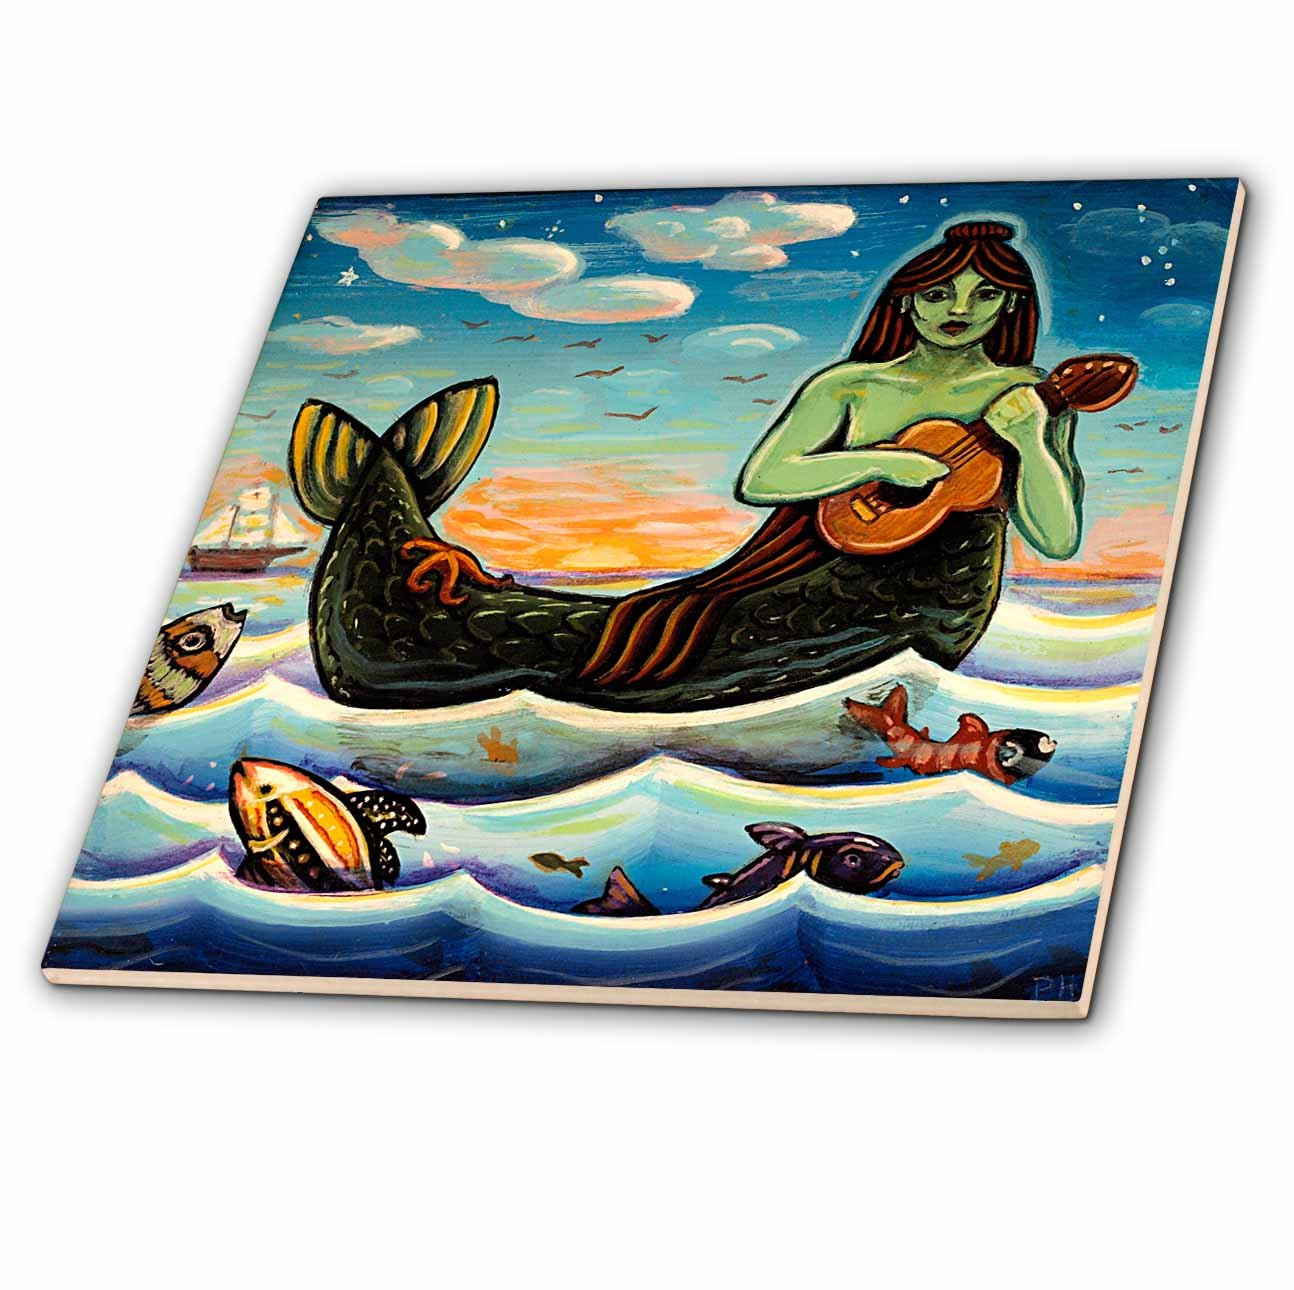 3dRose ct_21204_4 Mermaid Woman Water Ocean Folk Folklore Ceramic Tile, 12-Inch